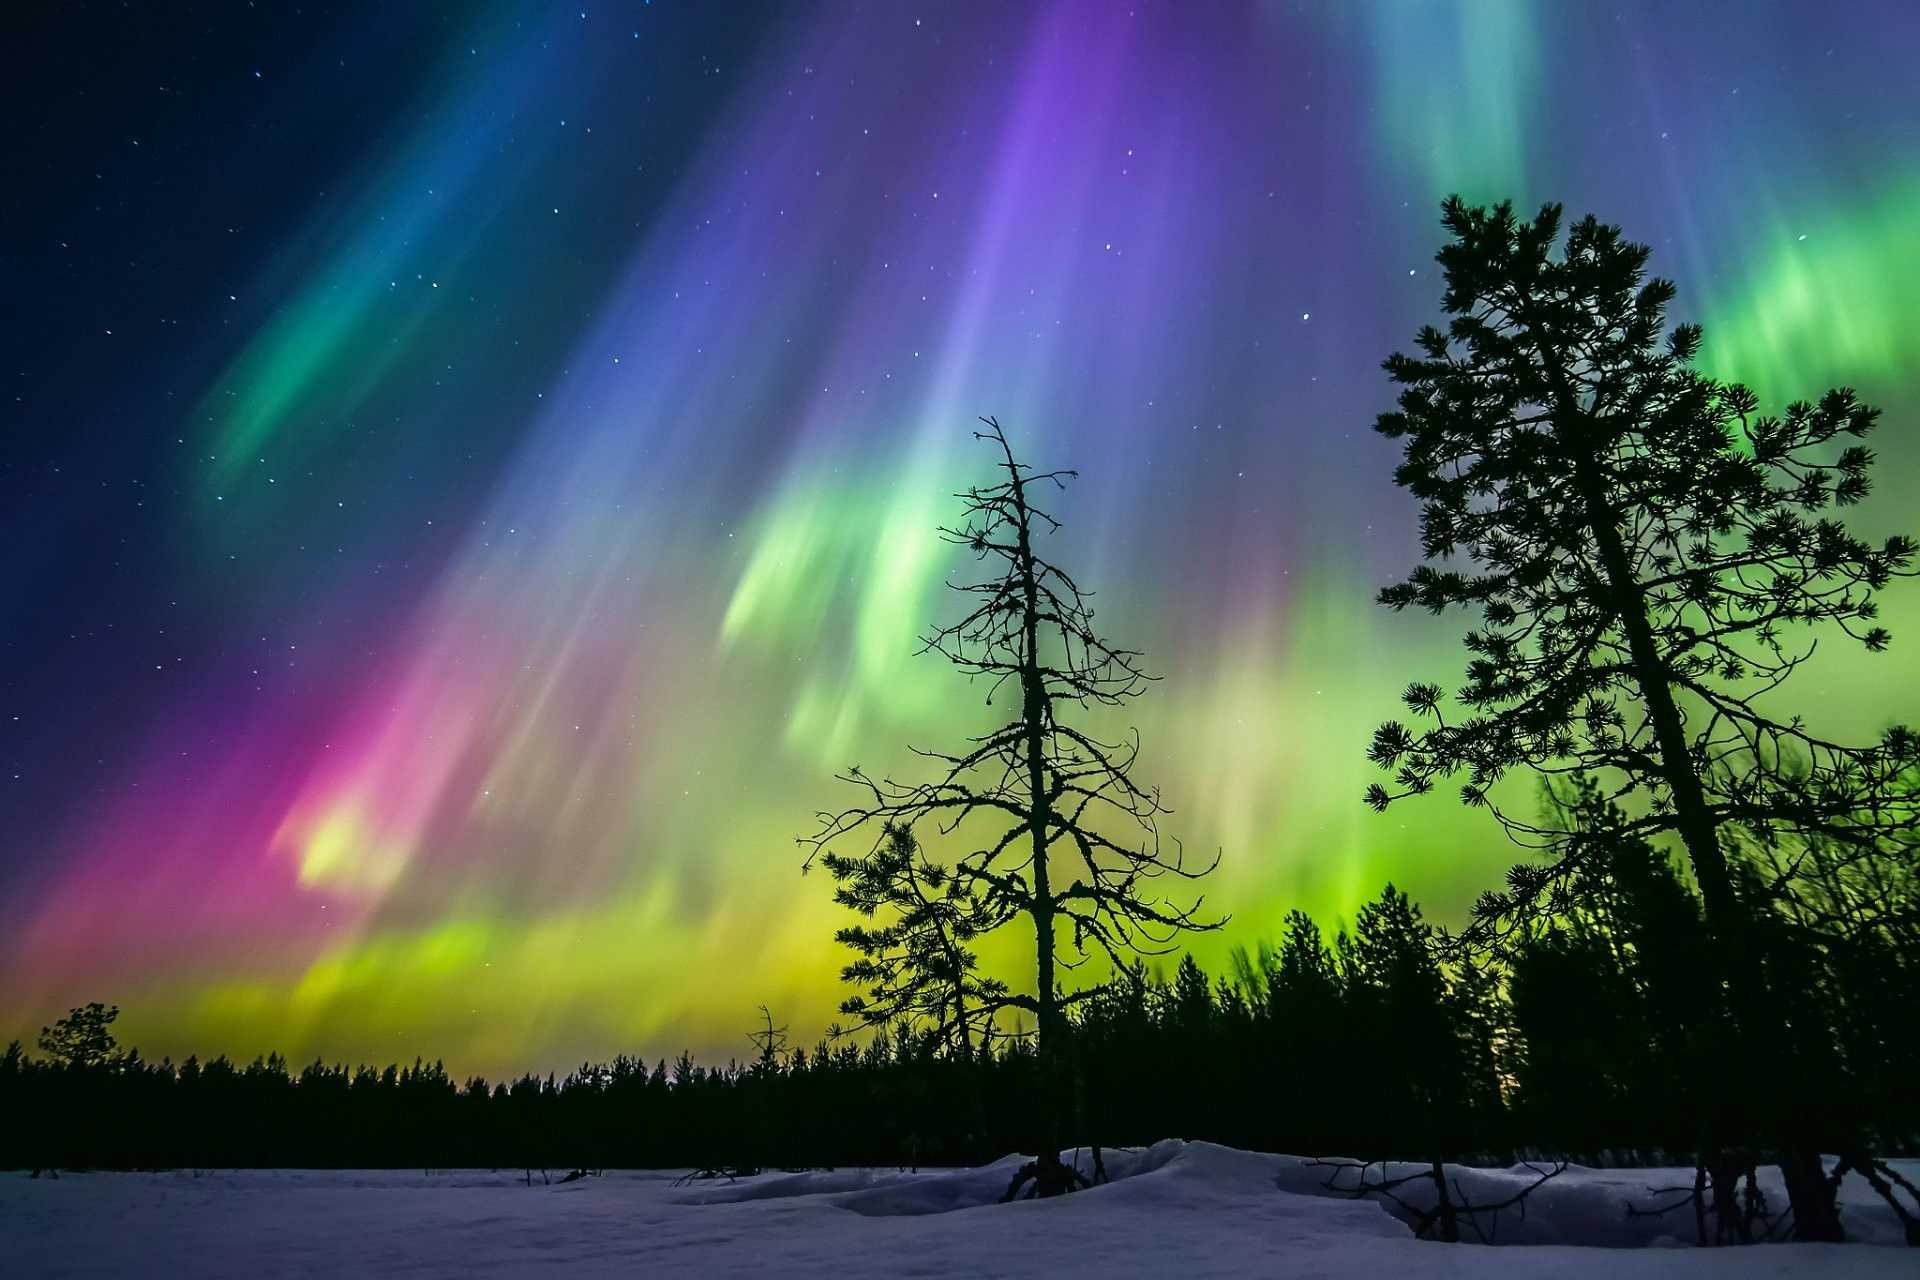 finland winter night sky star northern lights snow forest tree silhouettes